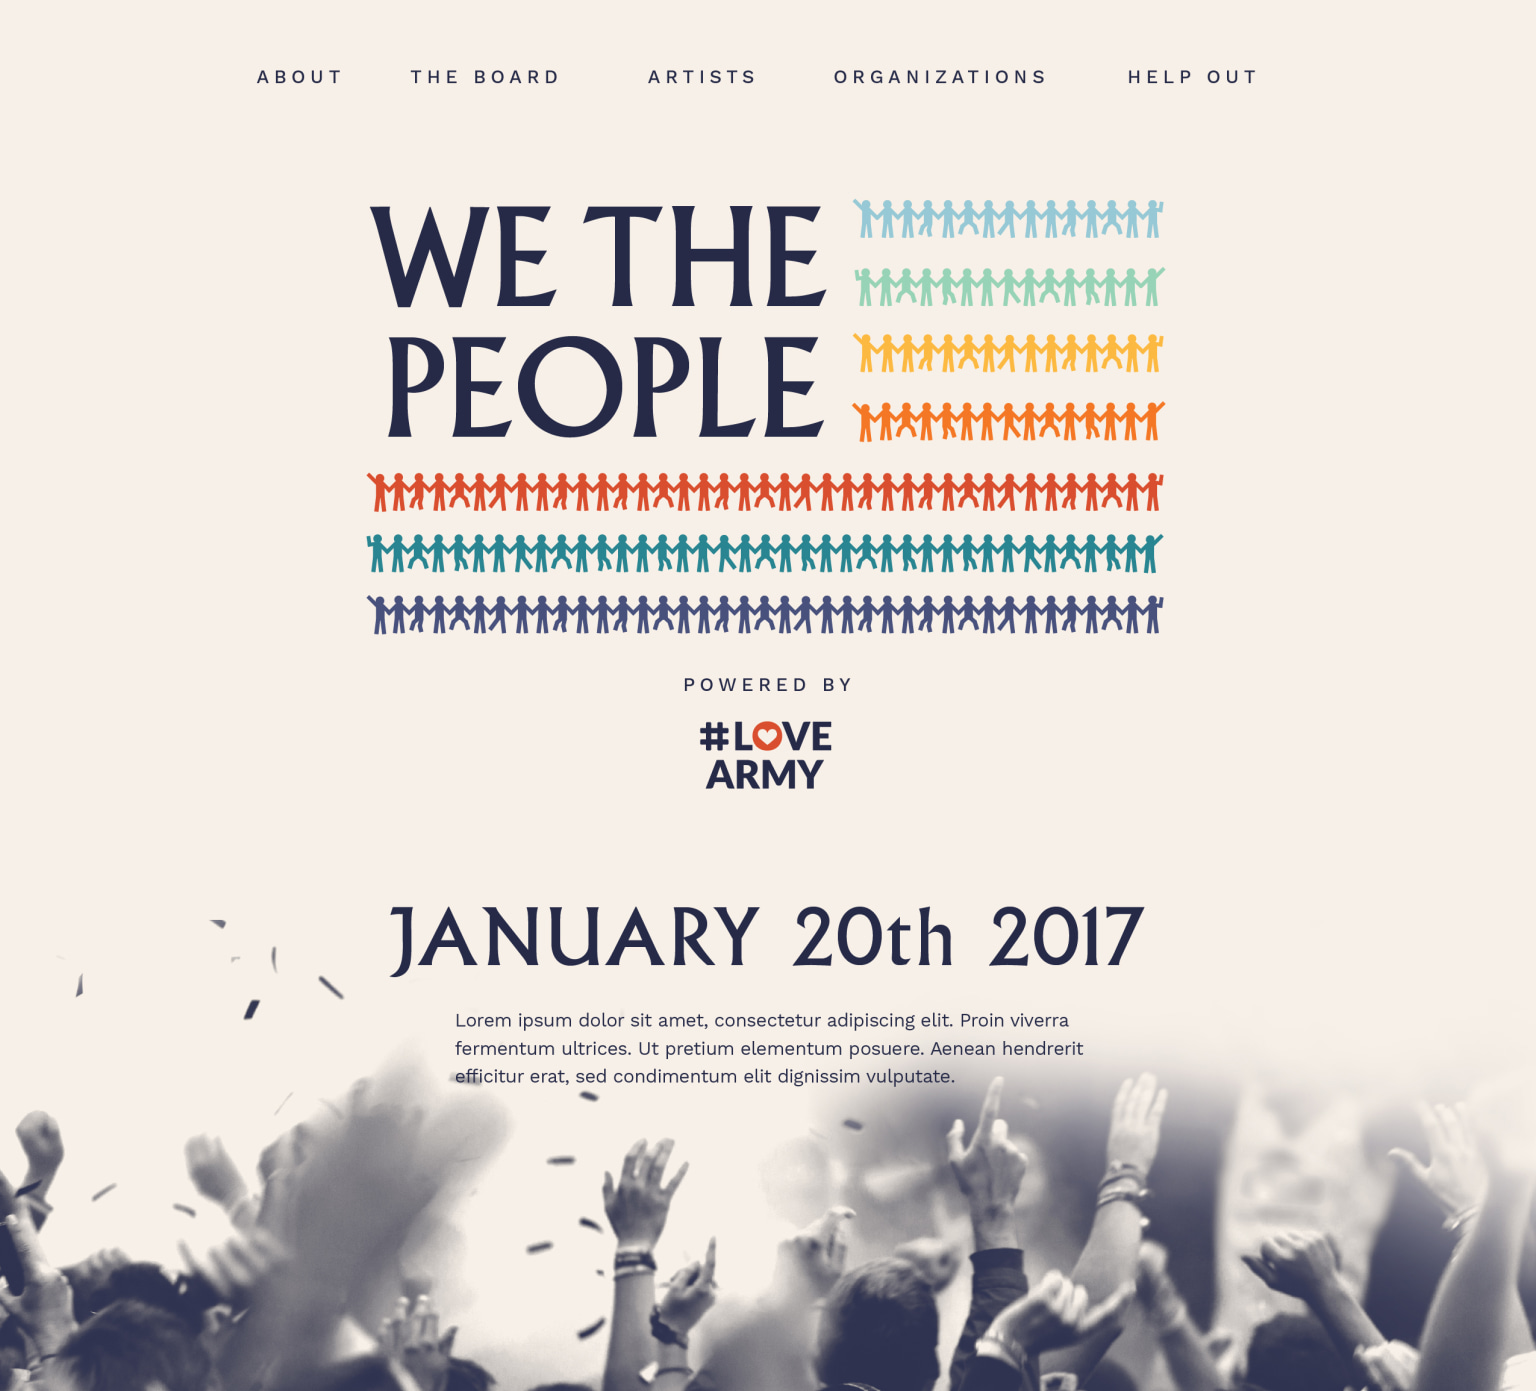 WE THE PEOPLE logo and website